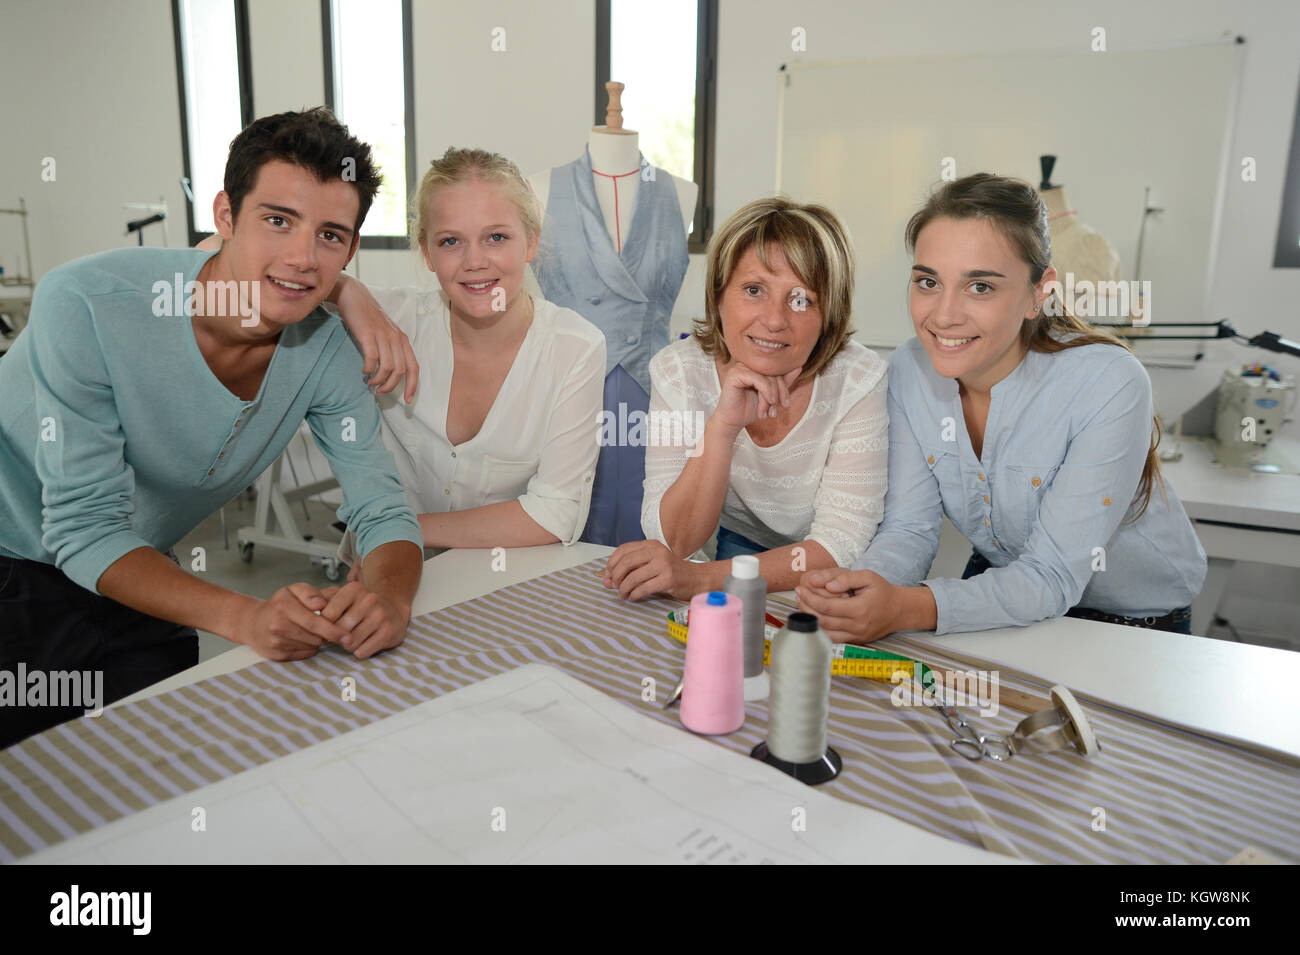 Portrait of group of students with teacher - Stock Image